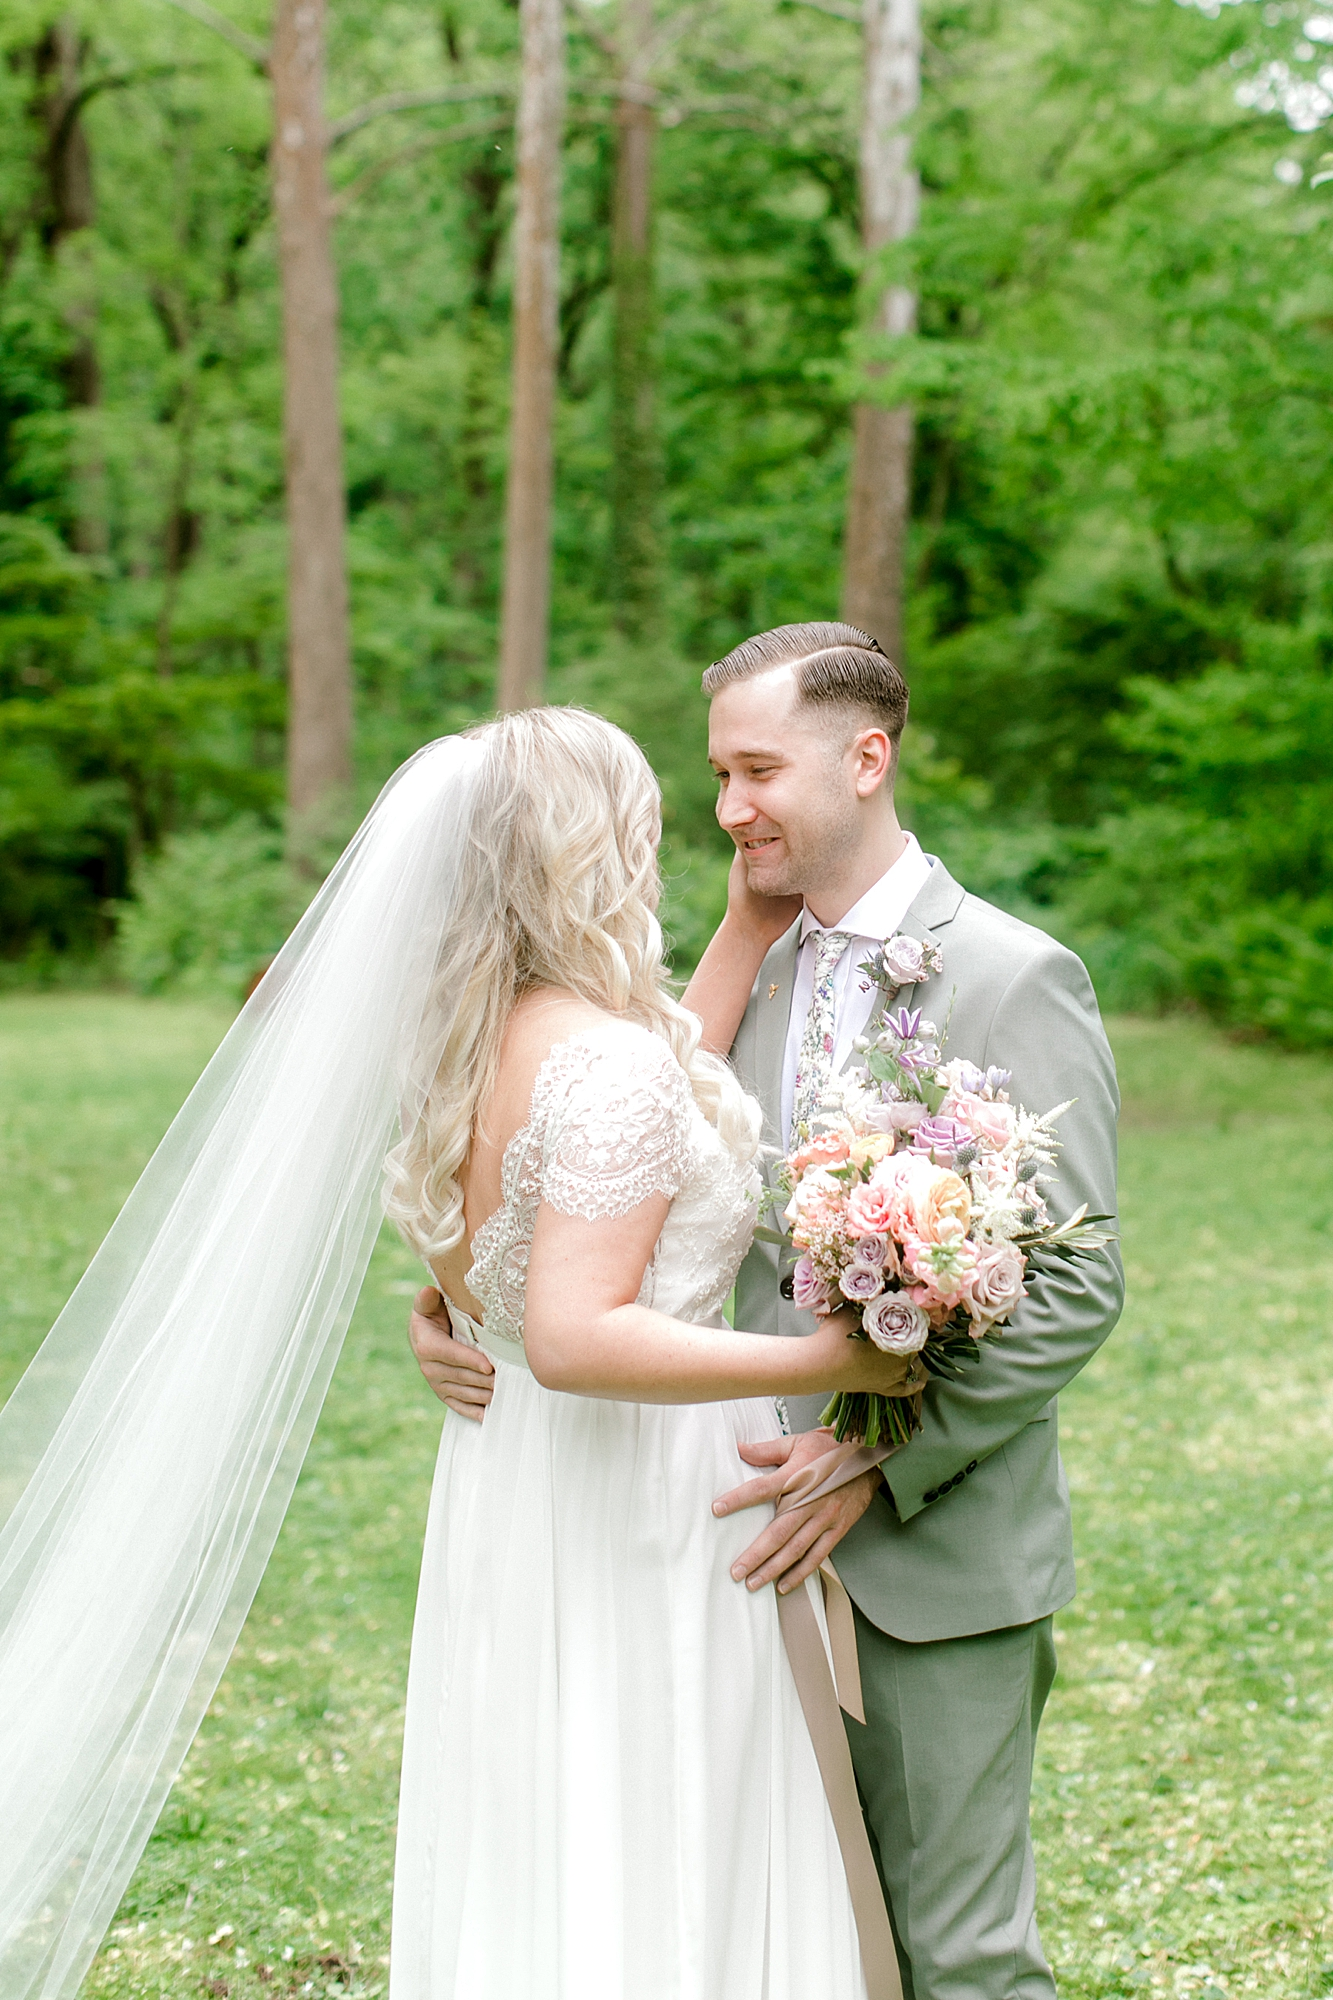 Intimate and Sweet Estate Wedding Photography by Magdalena Studios 0017